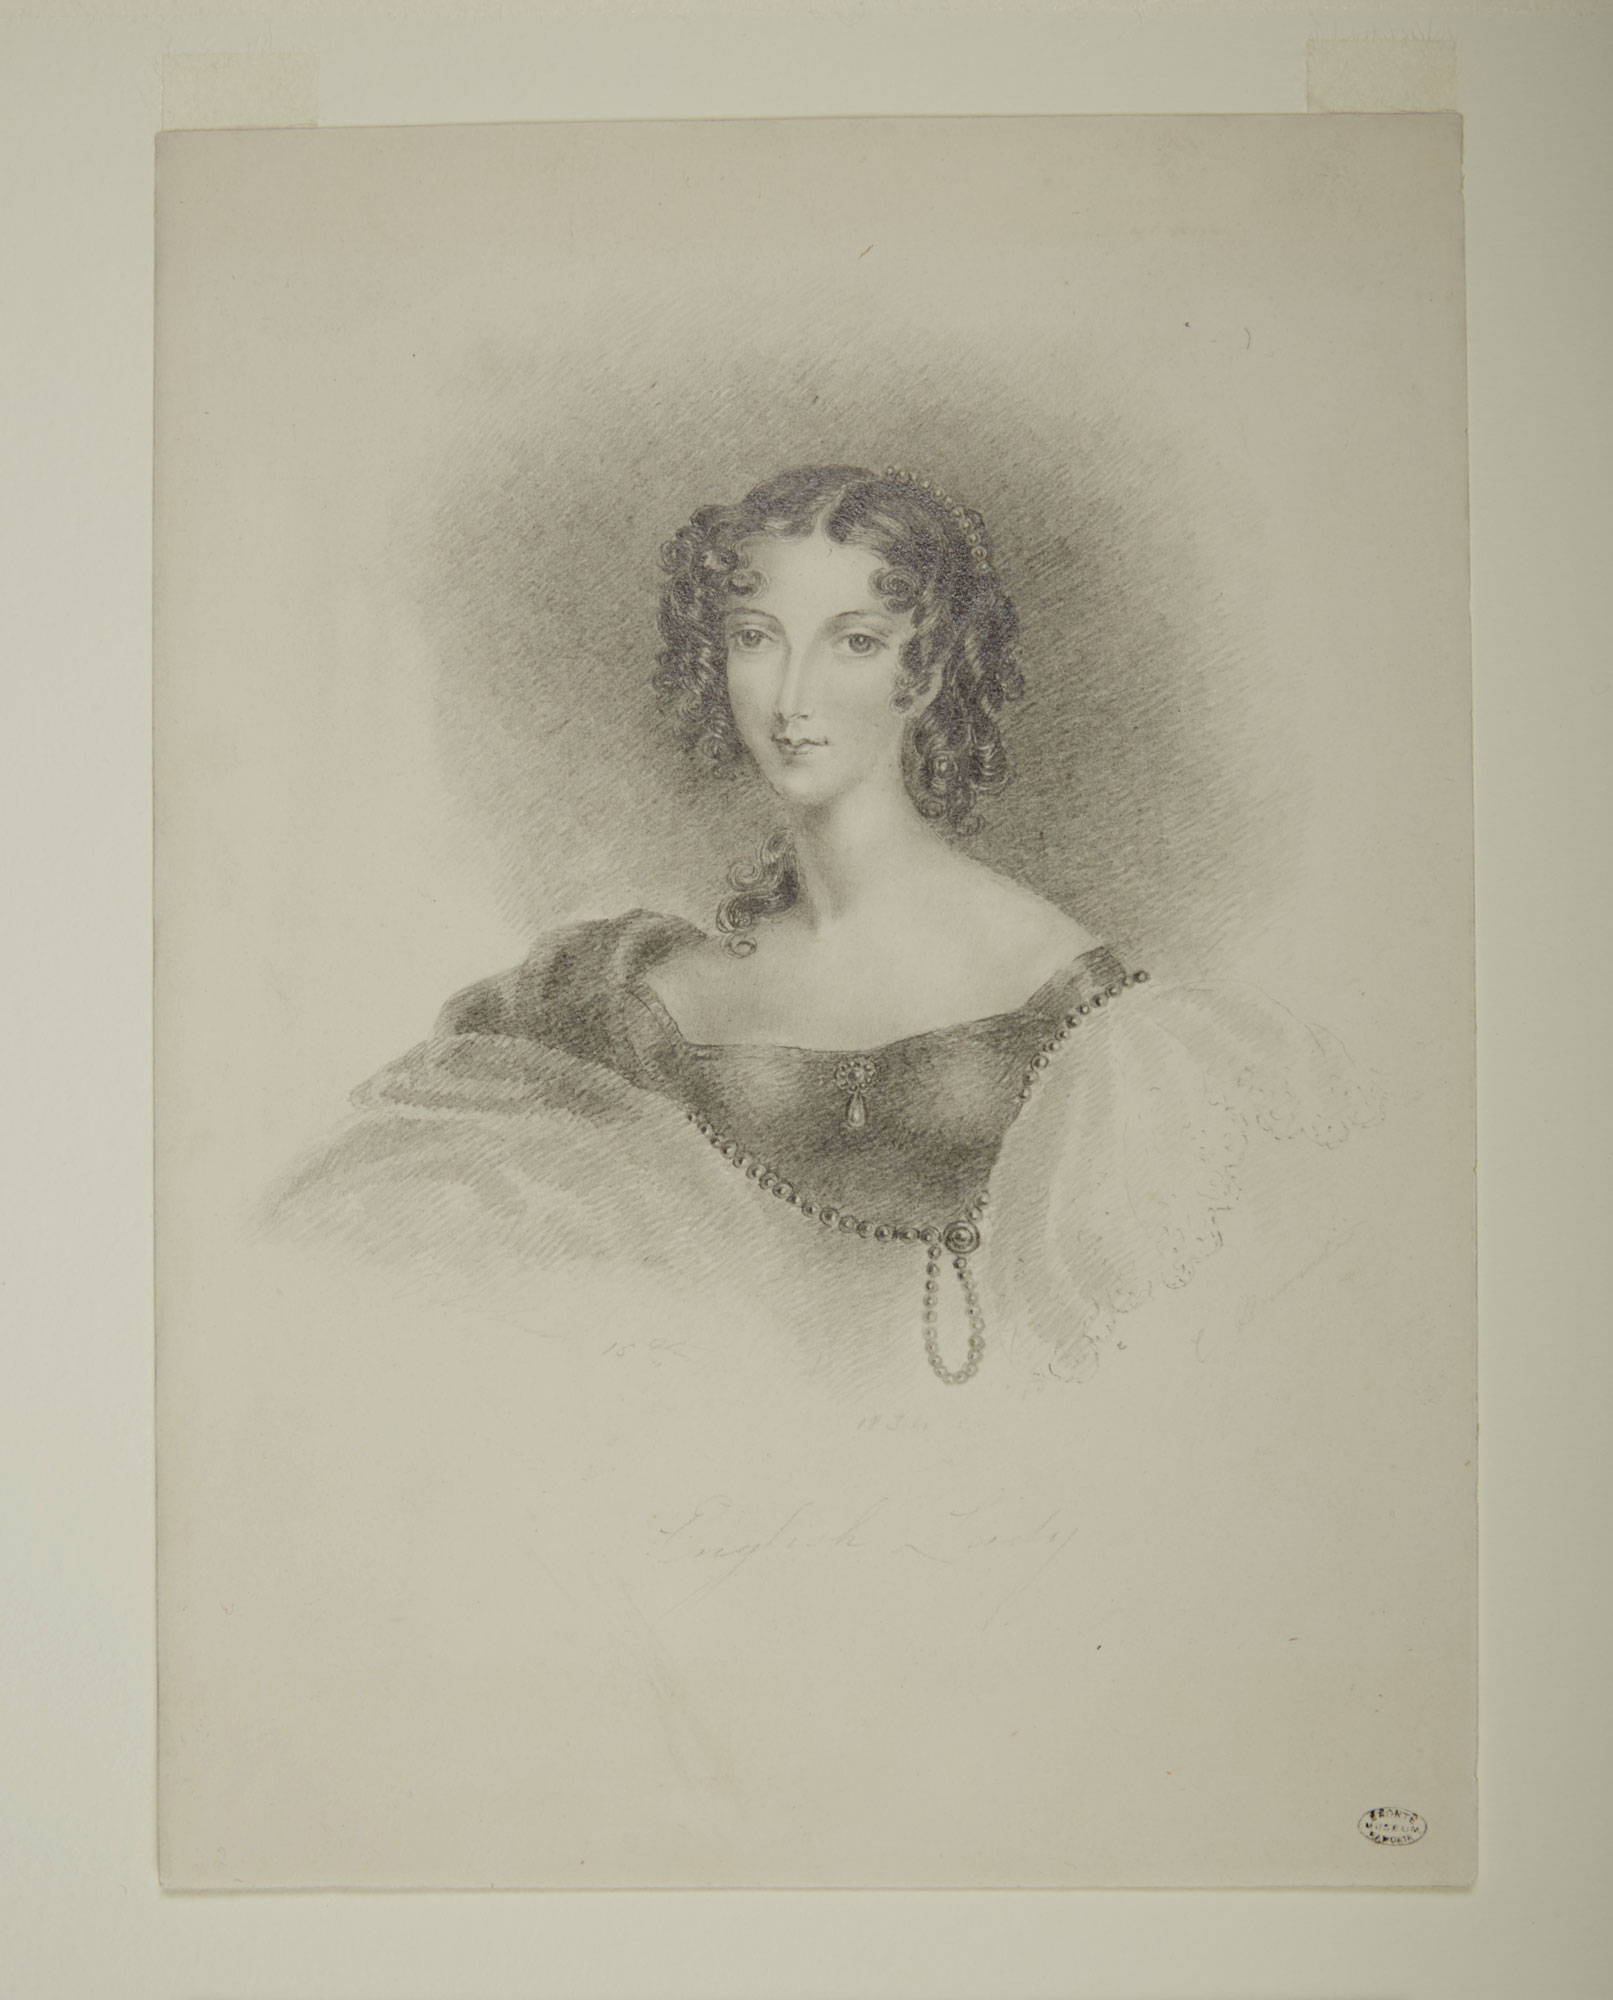 English Lady by Charlotte Bronte [folio: 0]